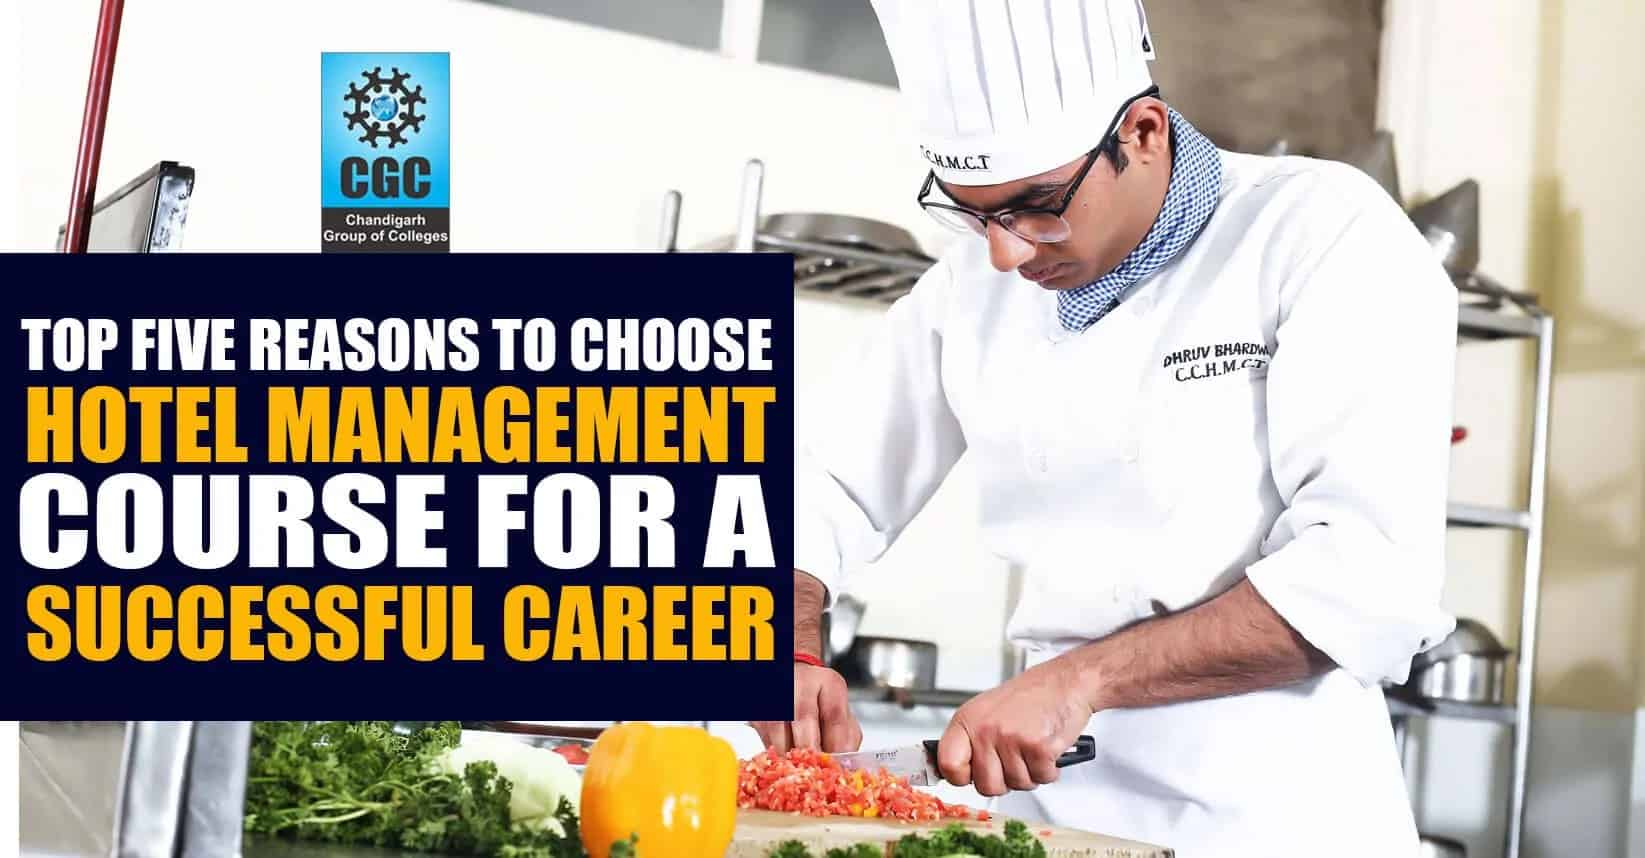 Five good reasons to choose Hotel Management course for a successful career